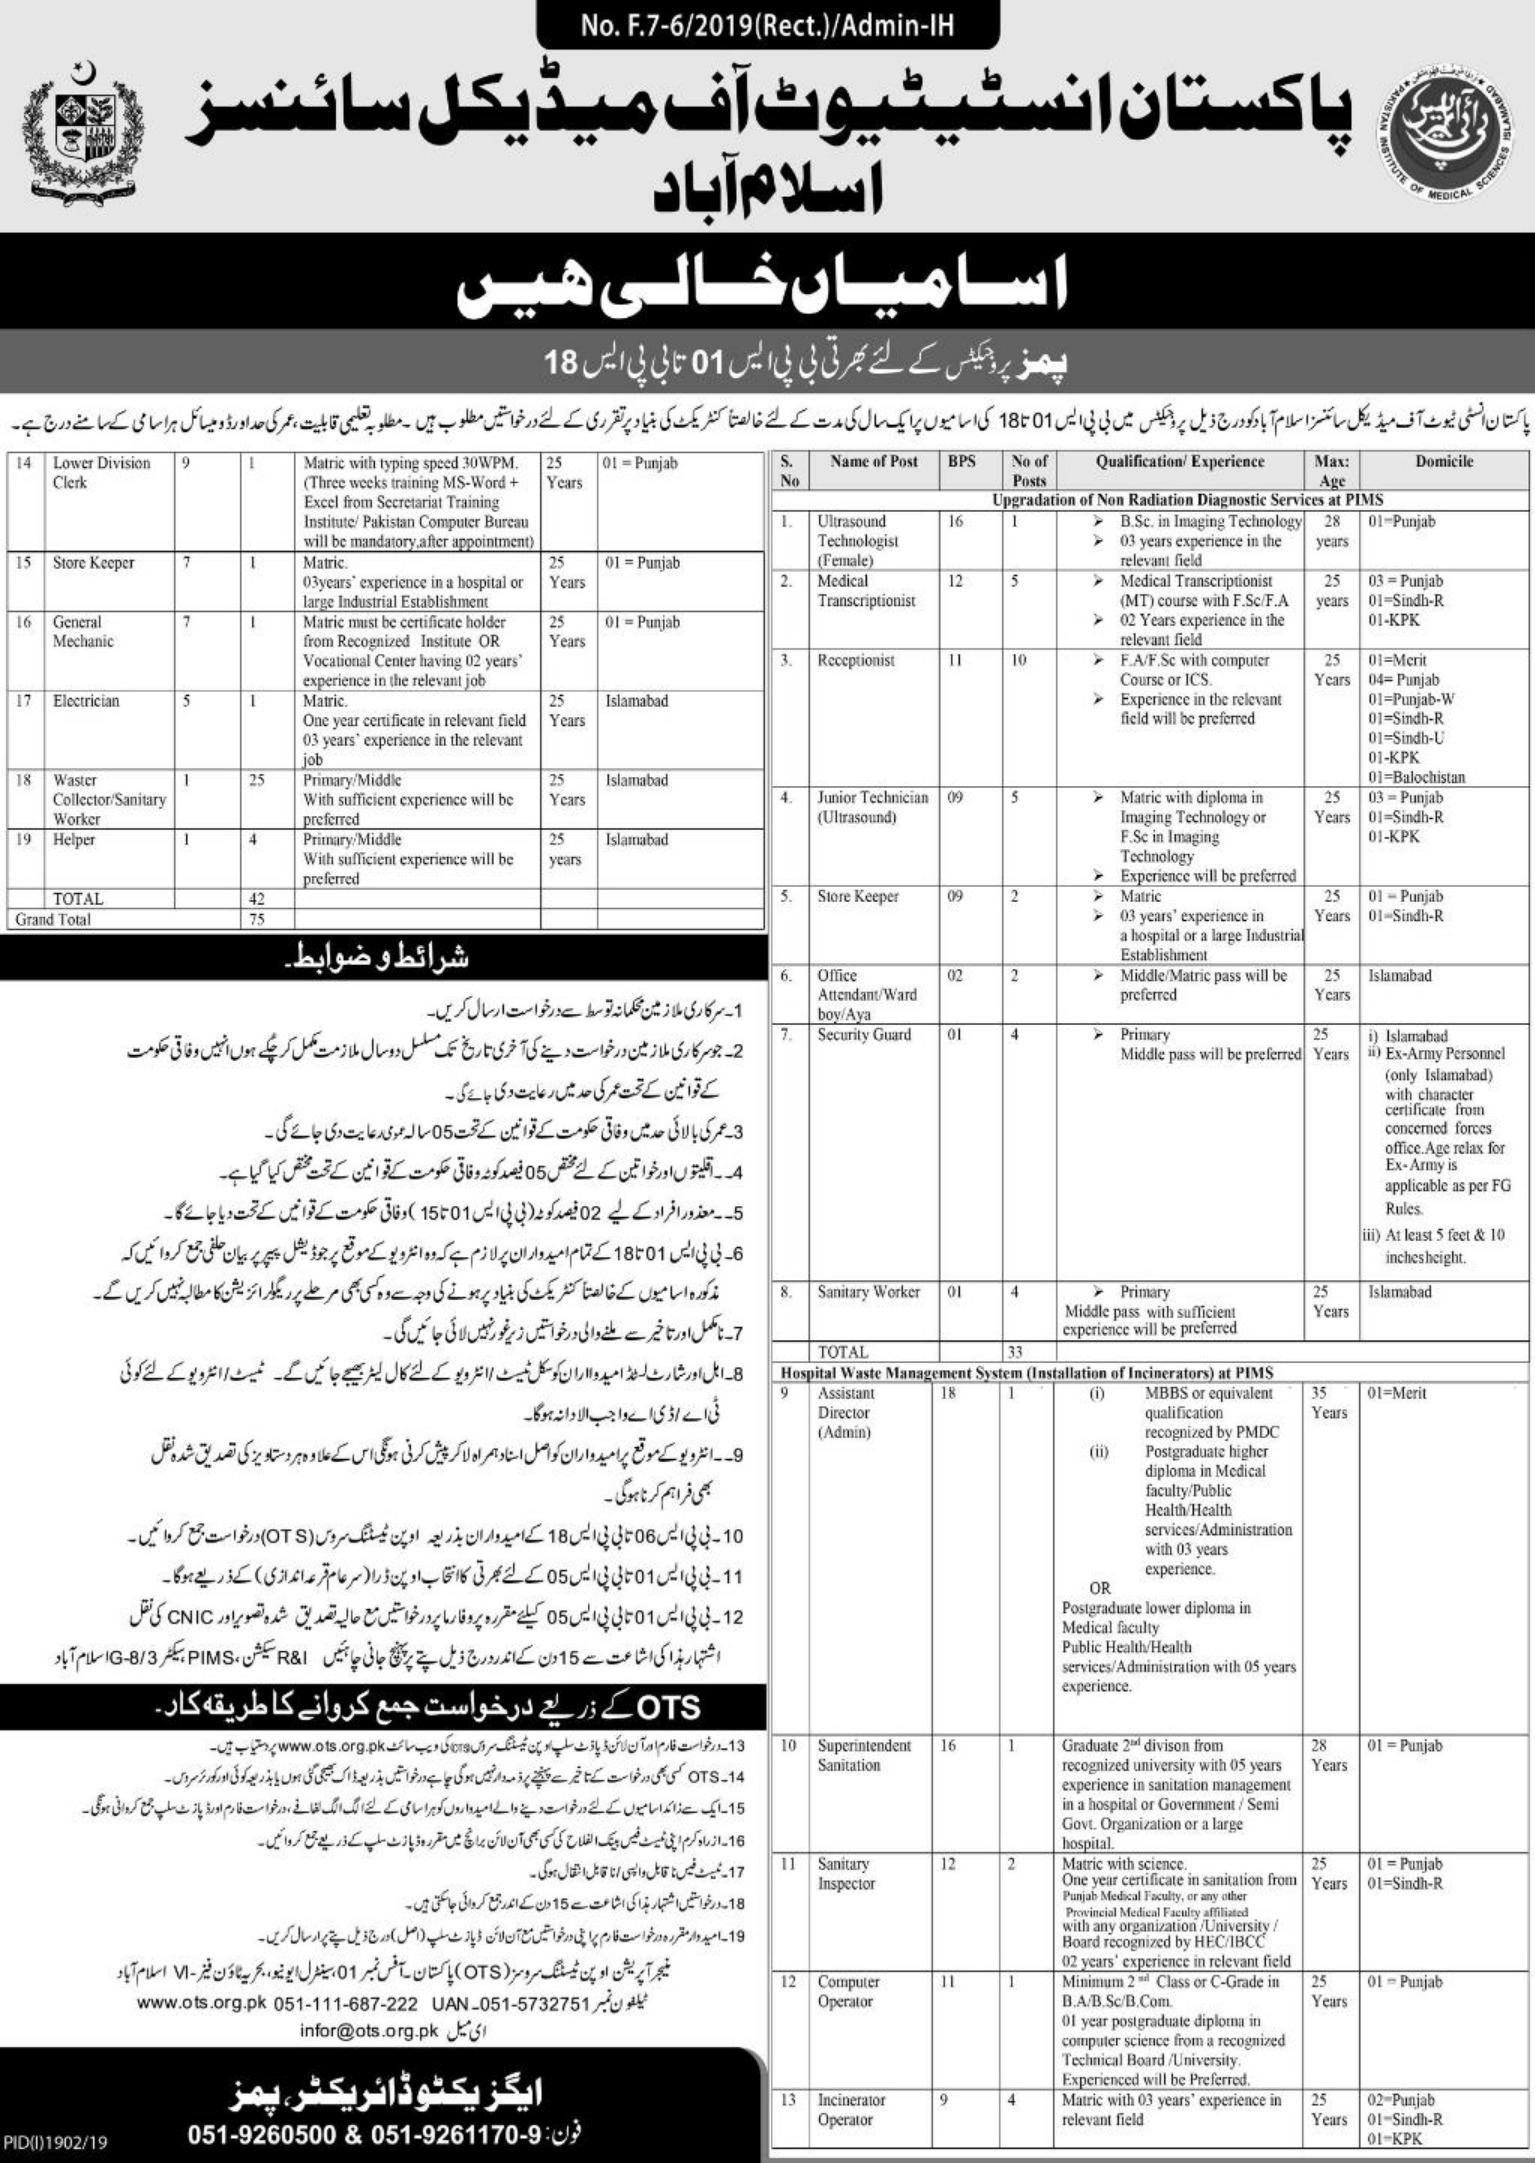 Pakistan Institute of Medical Sciences PIMS Jobs 2019 OTS Application Form